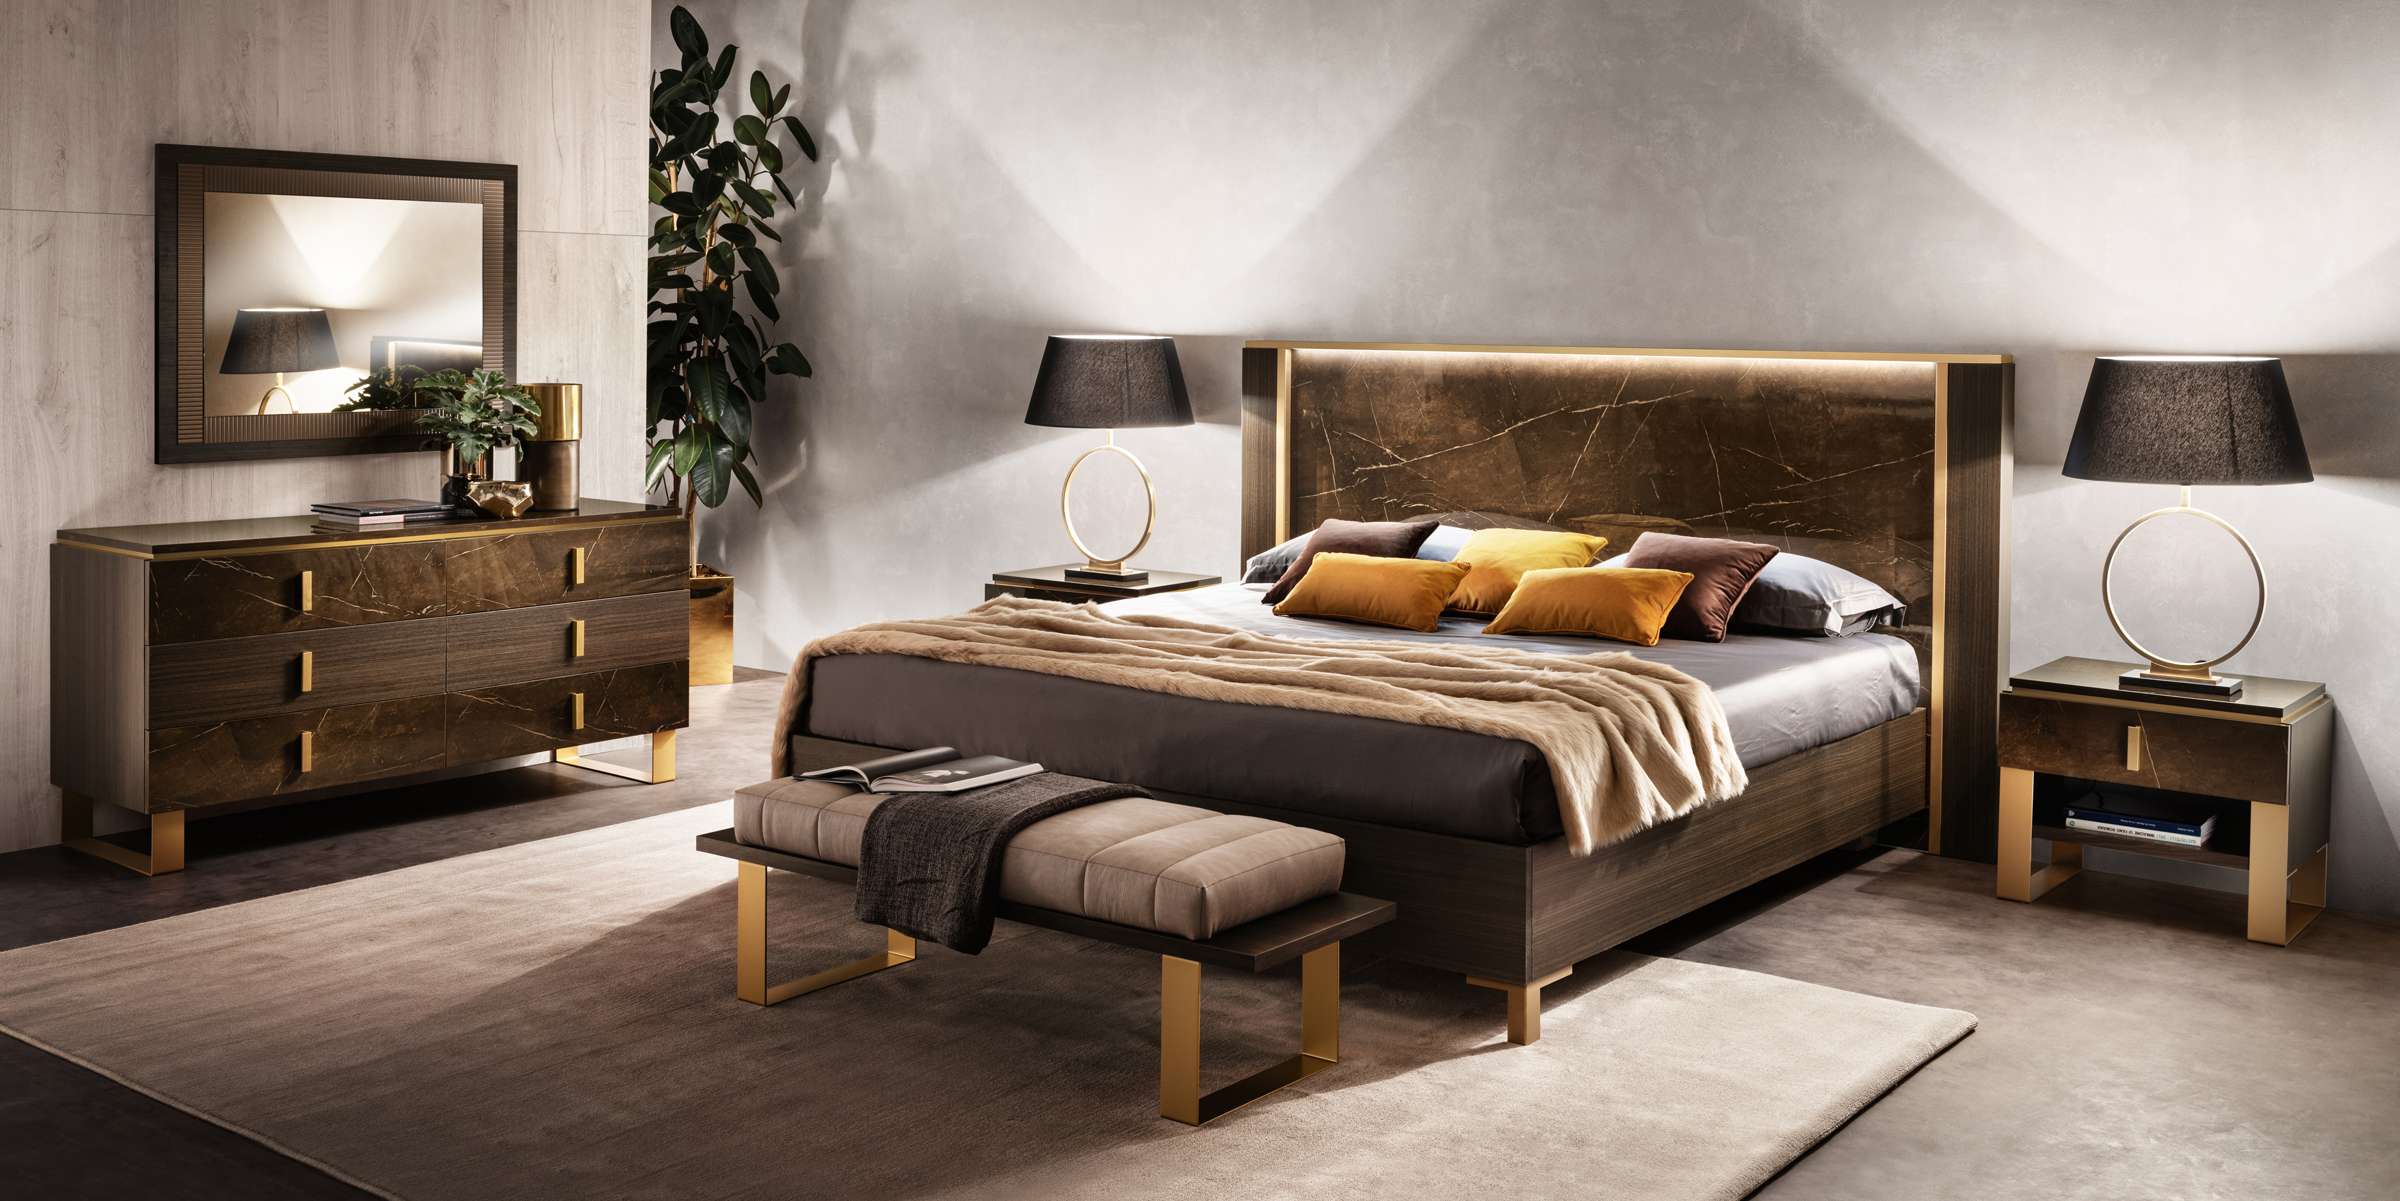 Brands Arredoclassic Bedroom, Italy Essenza Bedroom by Arredoclassic, Italy